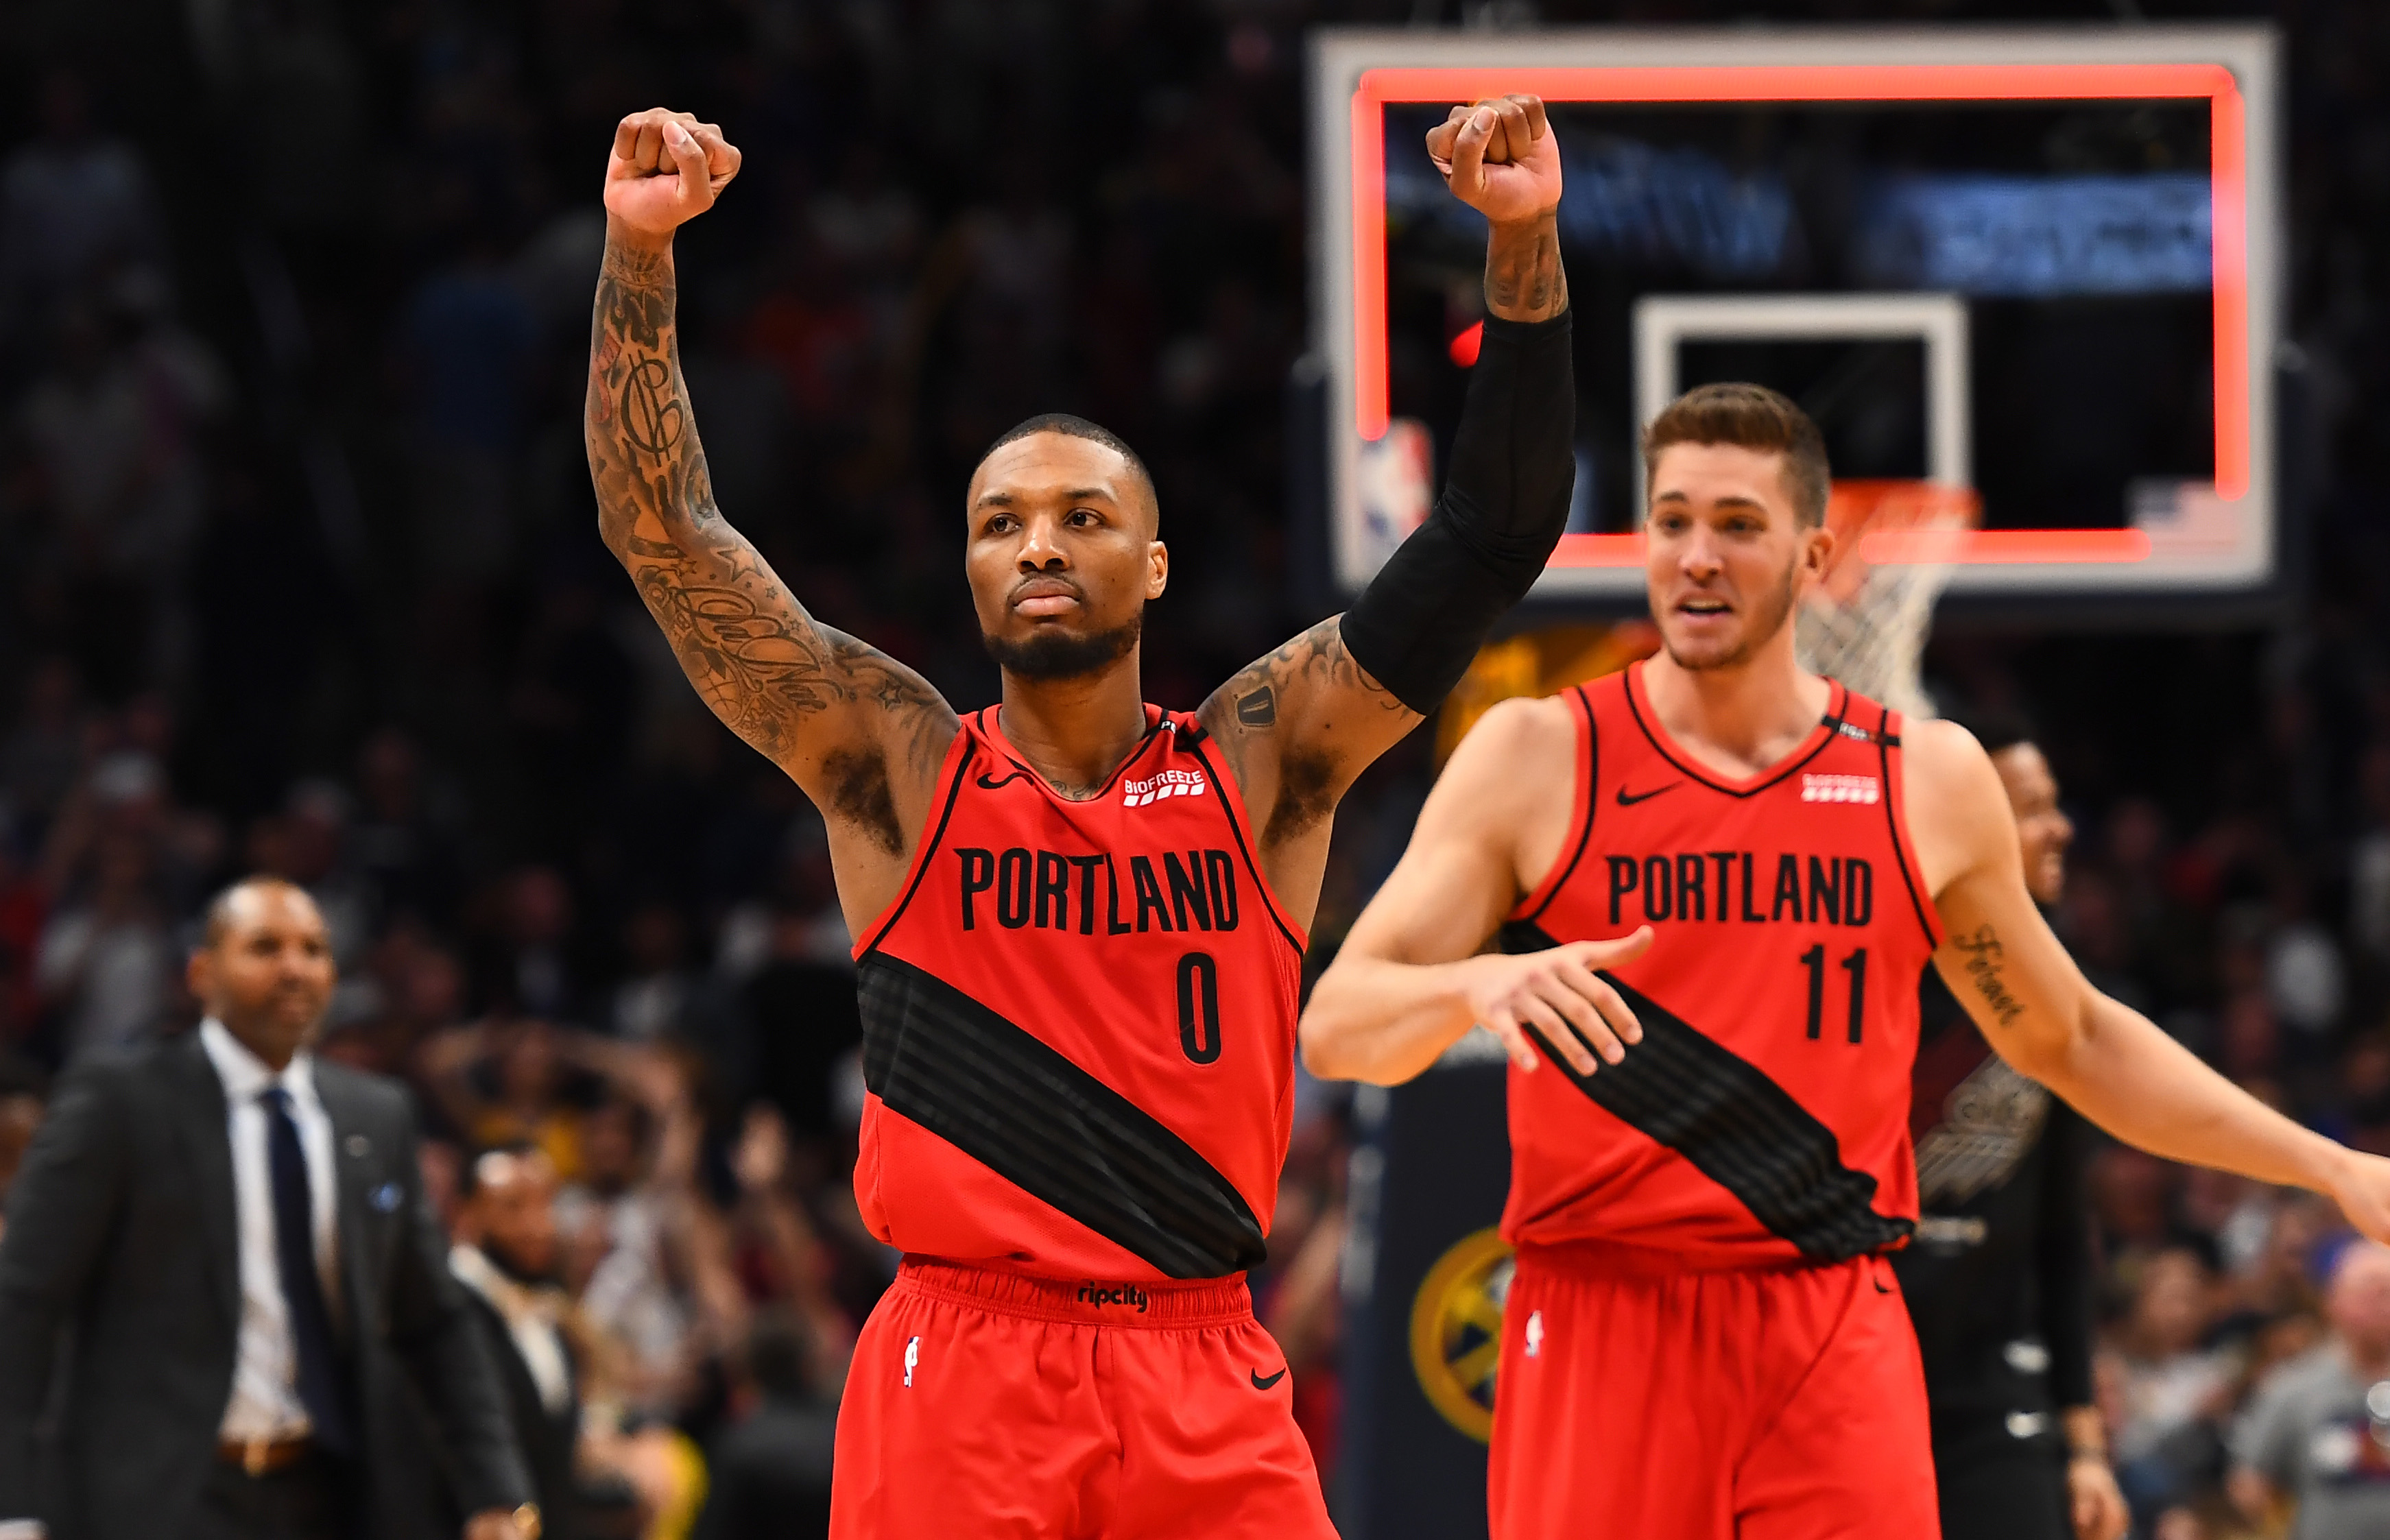 Nba Finals Live Stream Free 2019 Nba Playoffs Online Reddit Streaming The Sports Daily